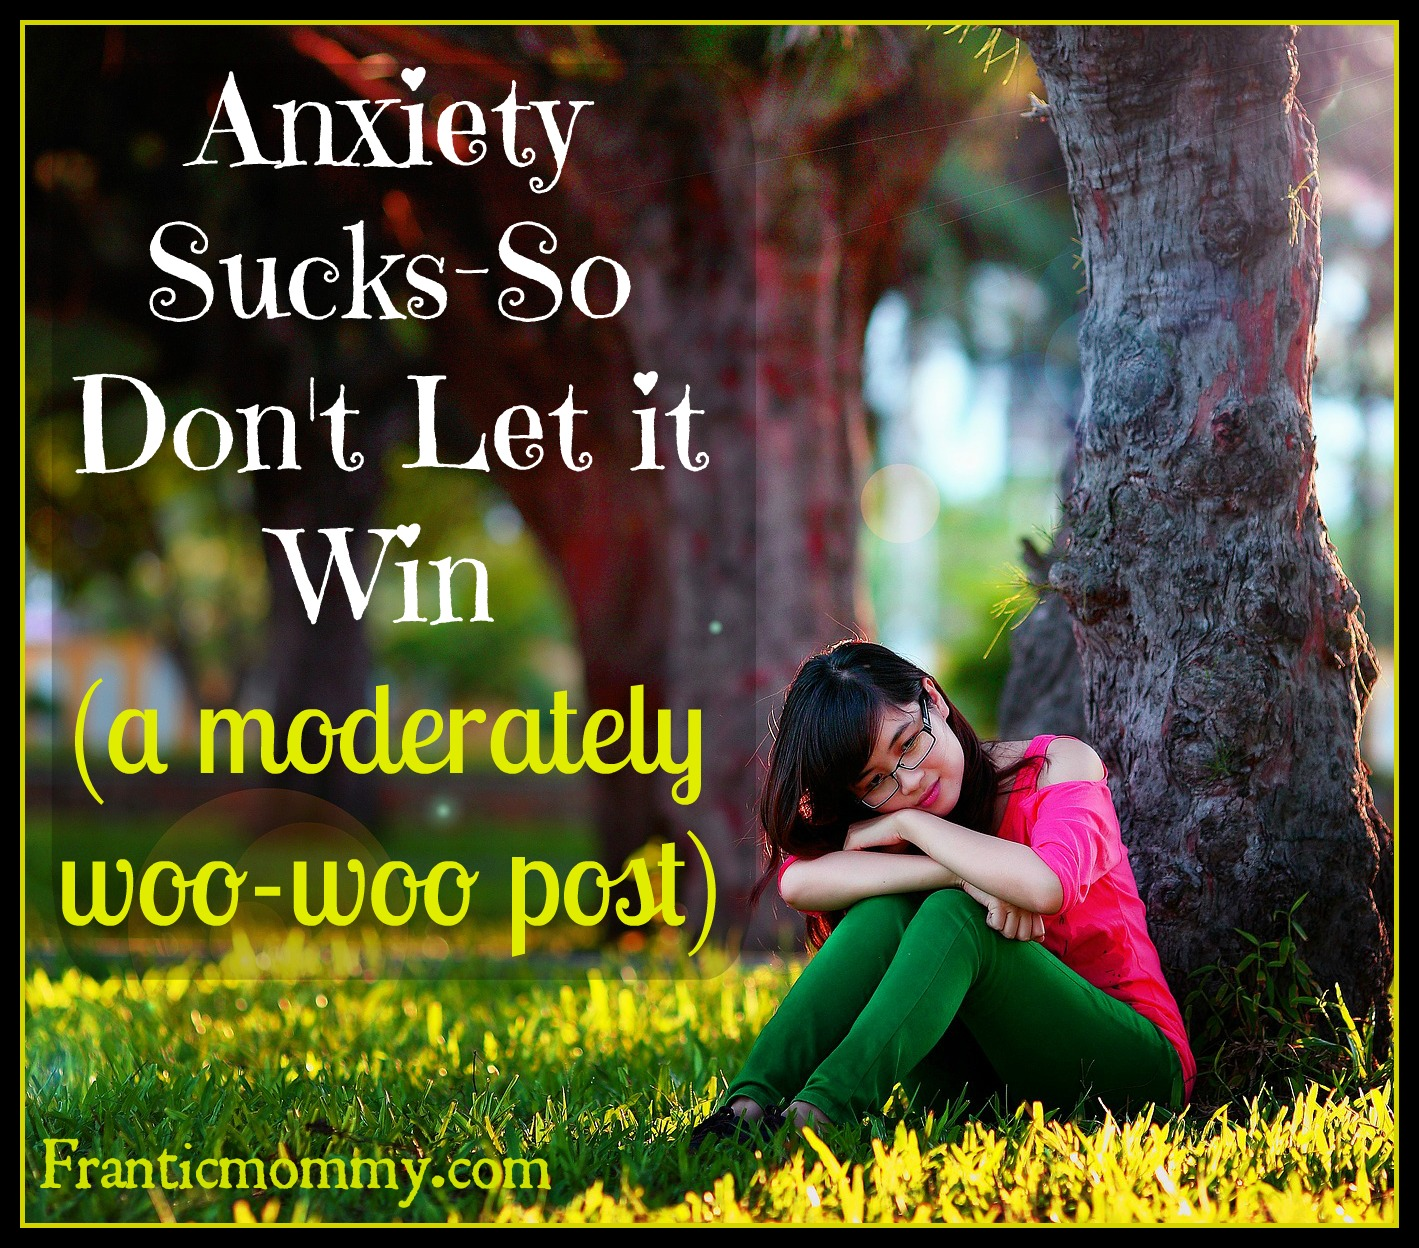 Anxiety Sucks-So Don't Let it Win (a moderately woo-woo post)